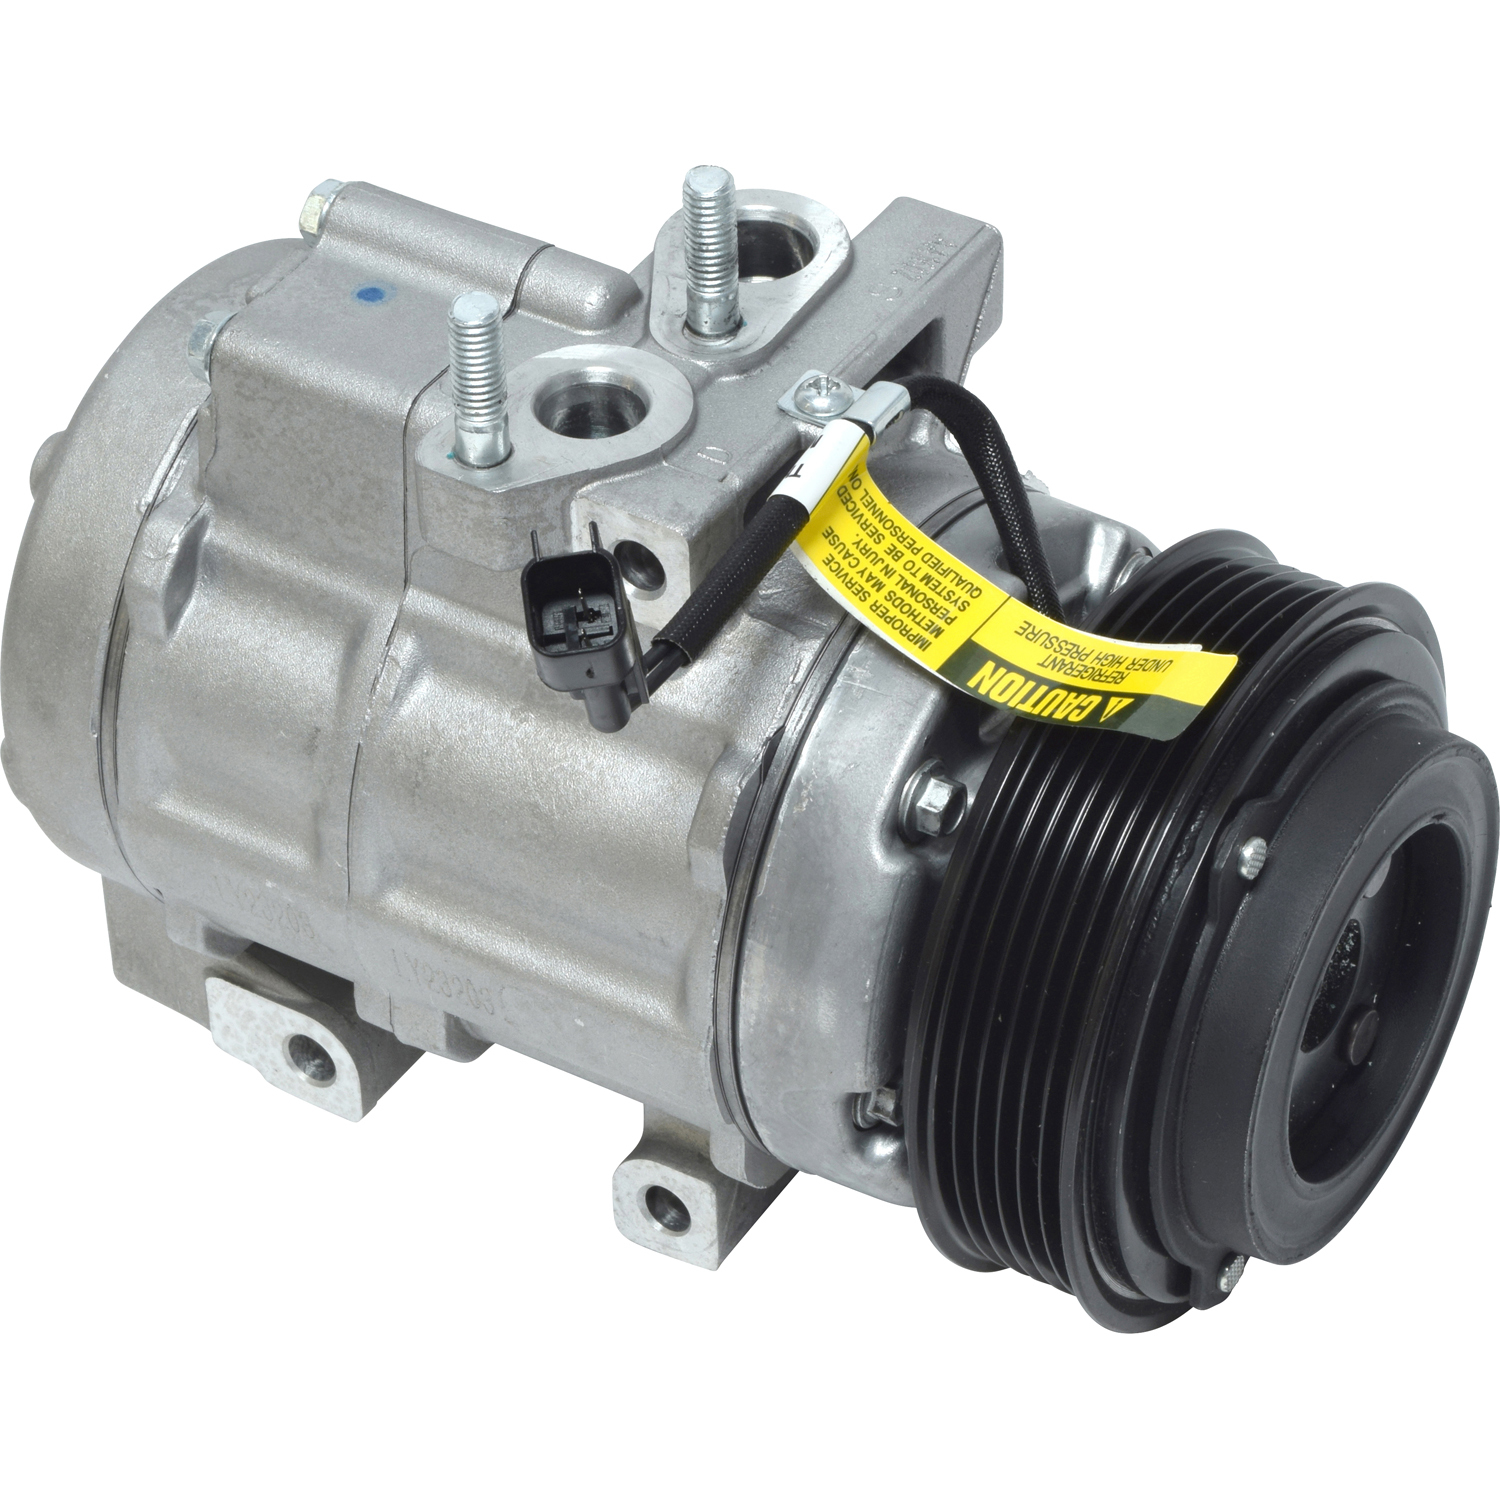 2007-2014 Ford F-250 Auto AC Air Conditioning Compressor Aftermarket Part